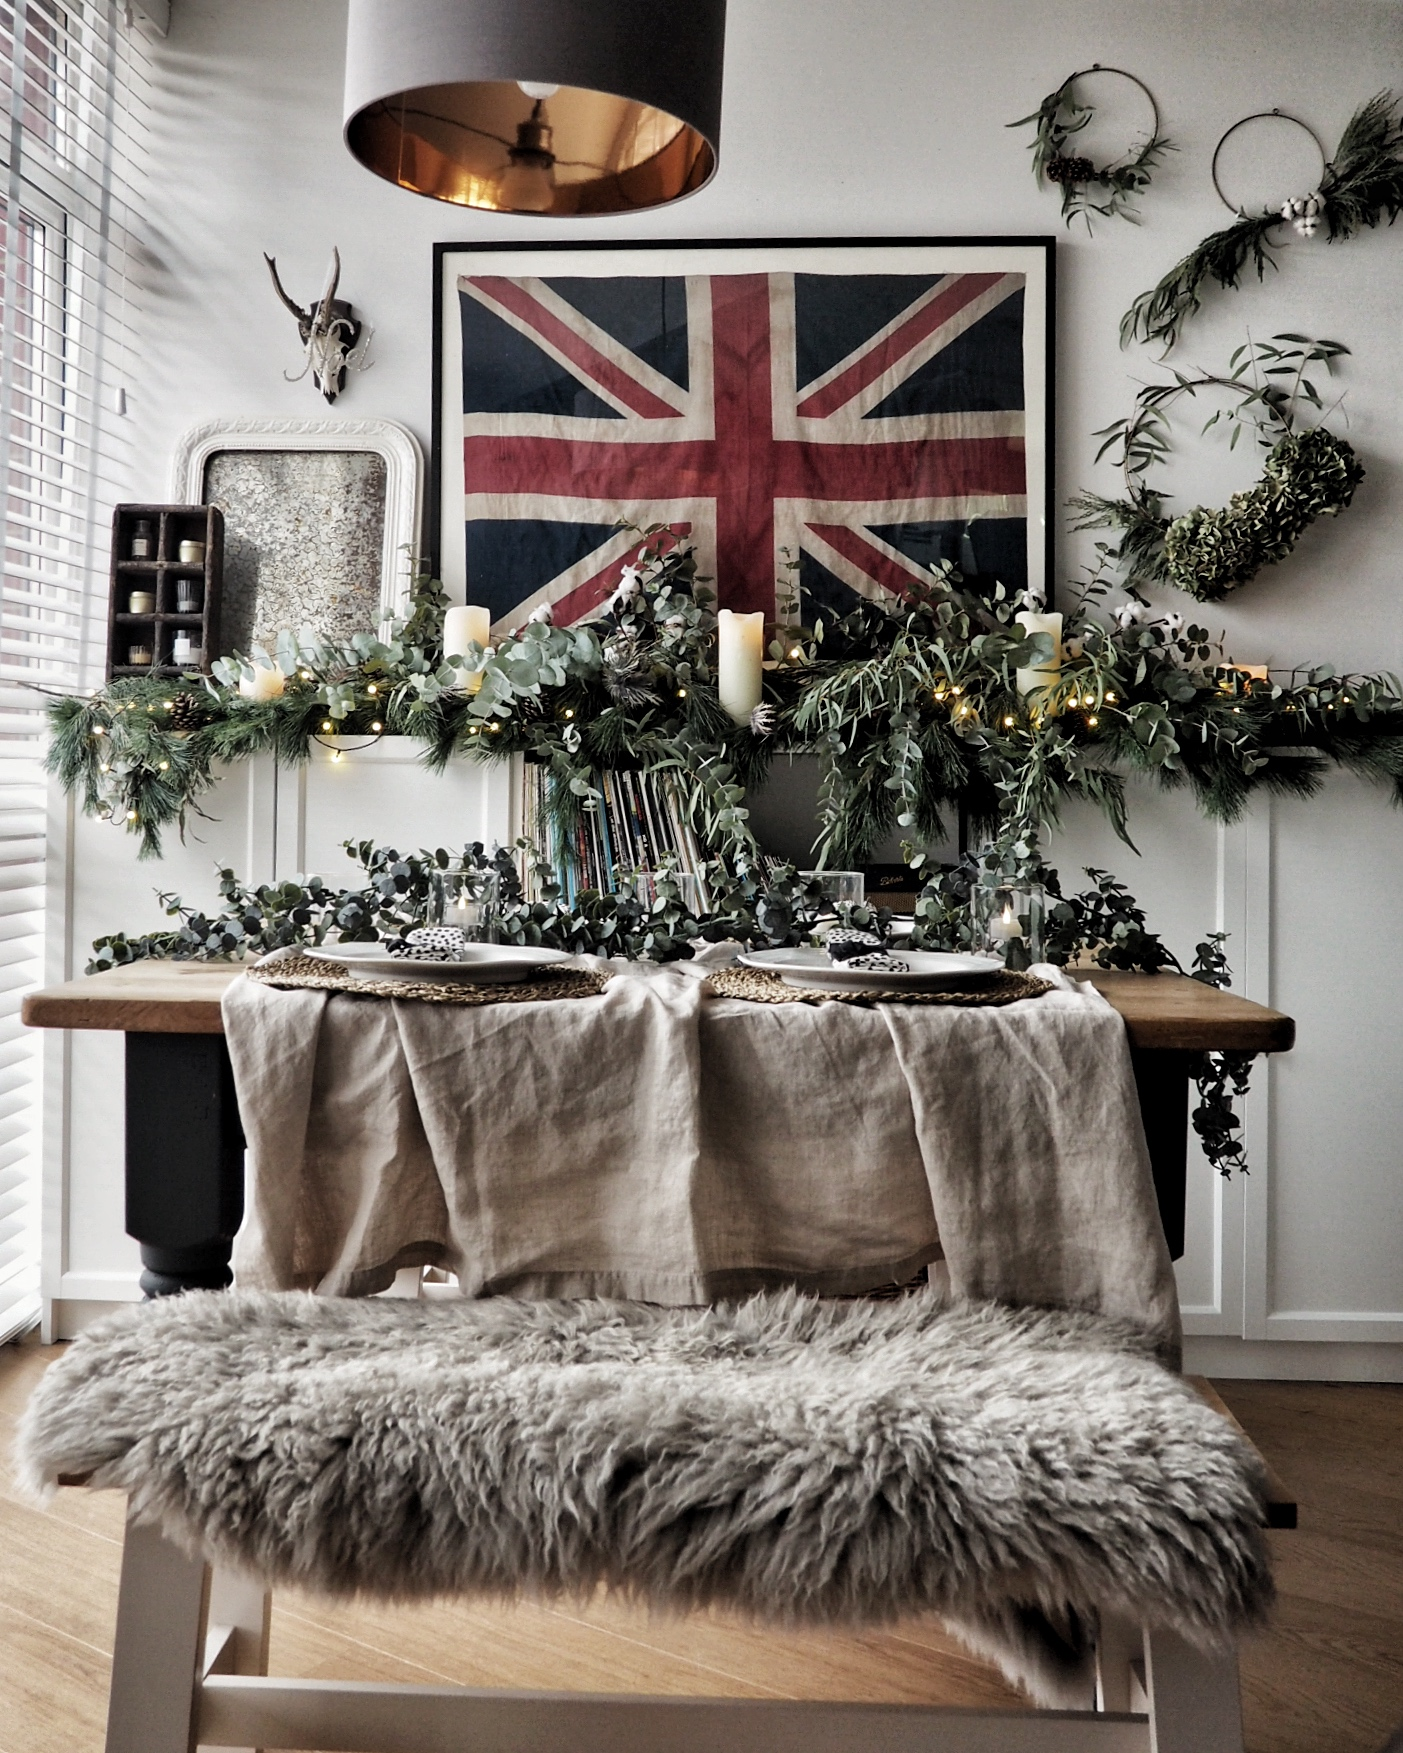 Faux eucalyptus garland used as table runner from Of Special Interest Interiors. Table cloth from H&M.